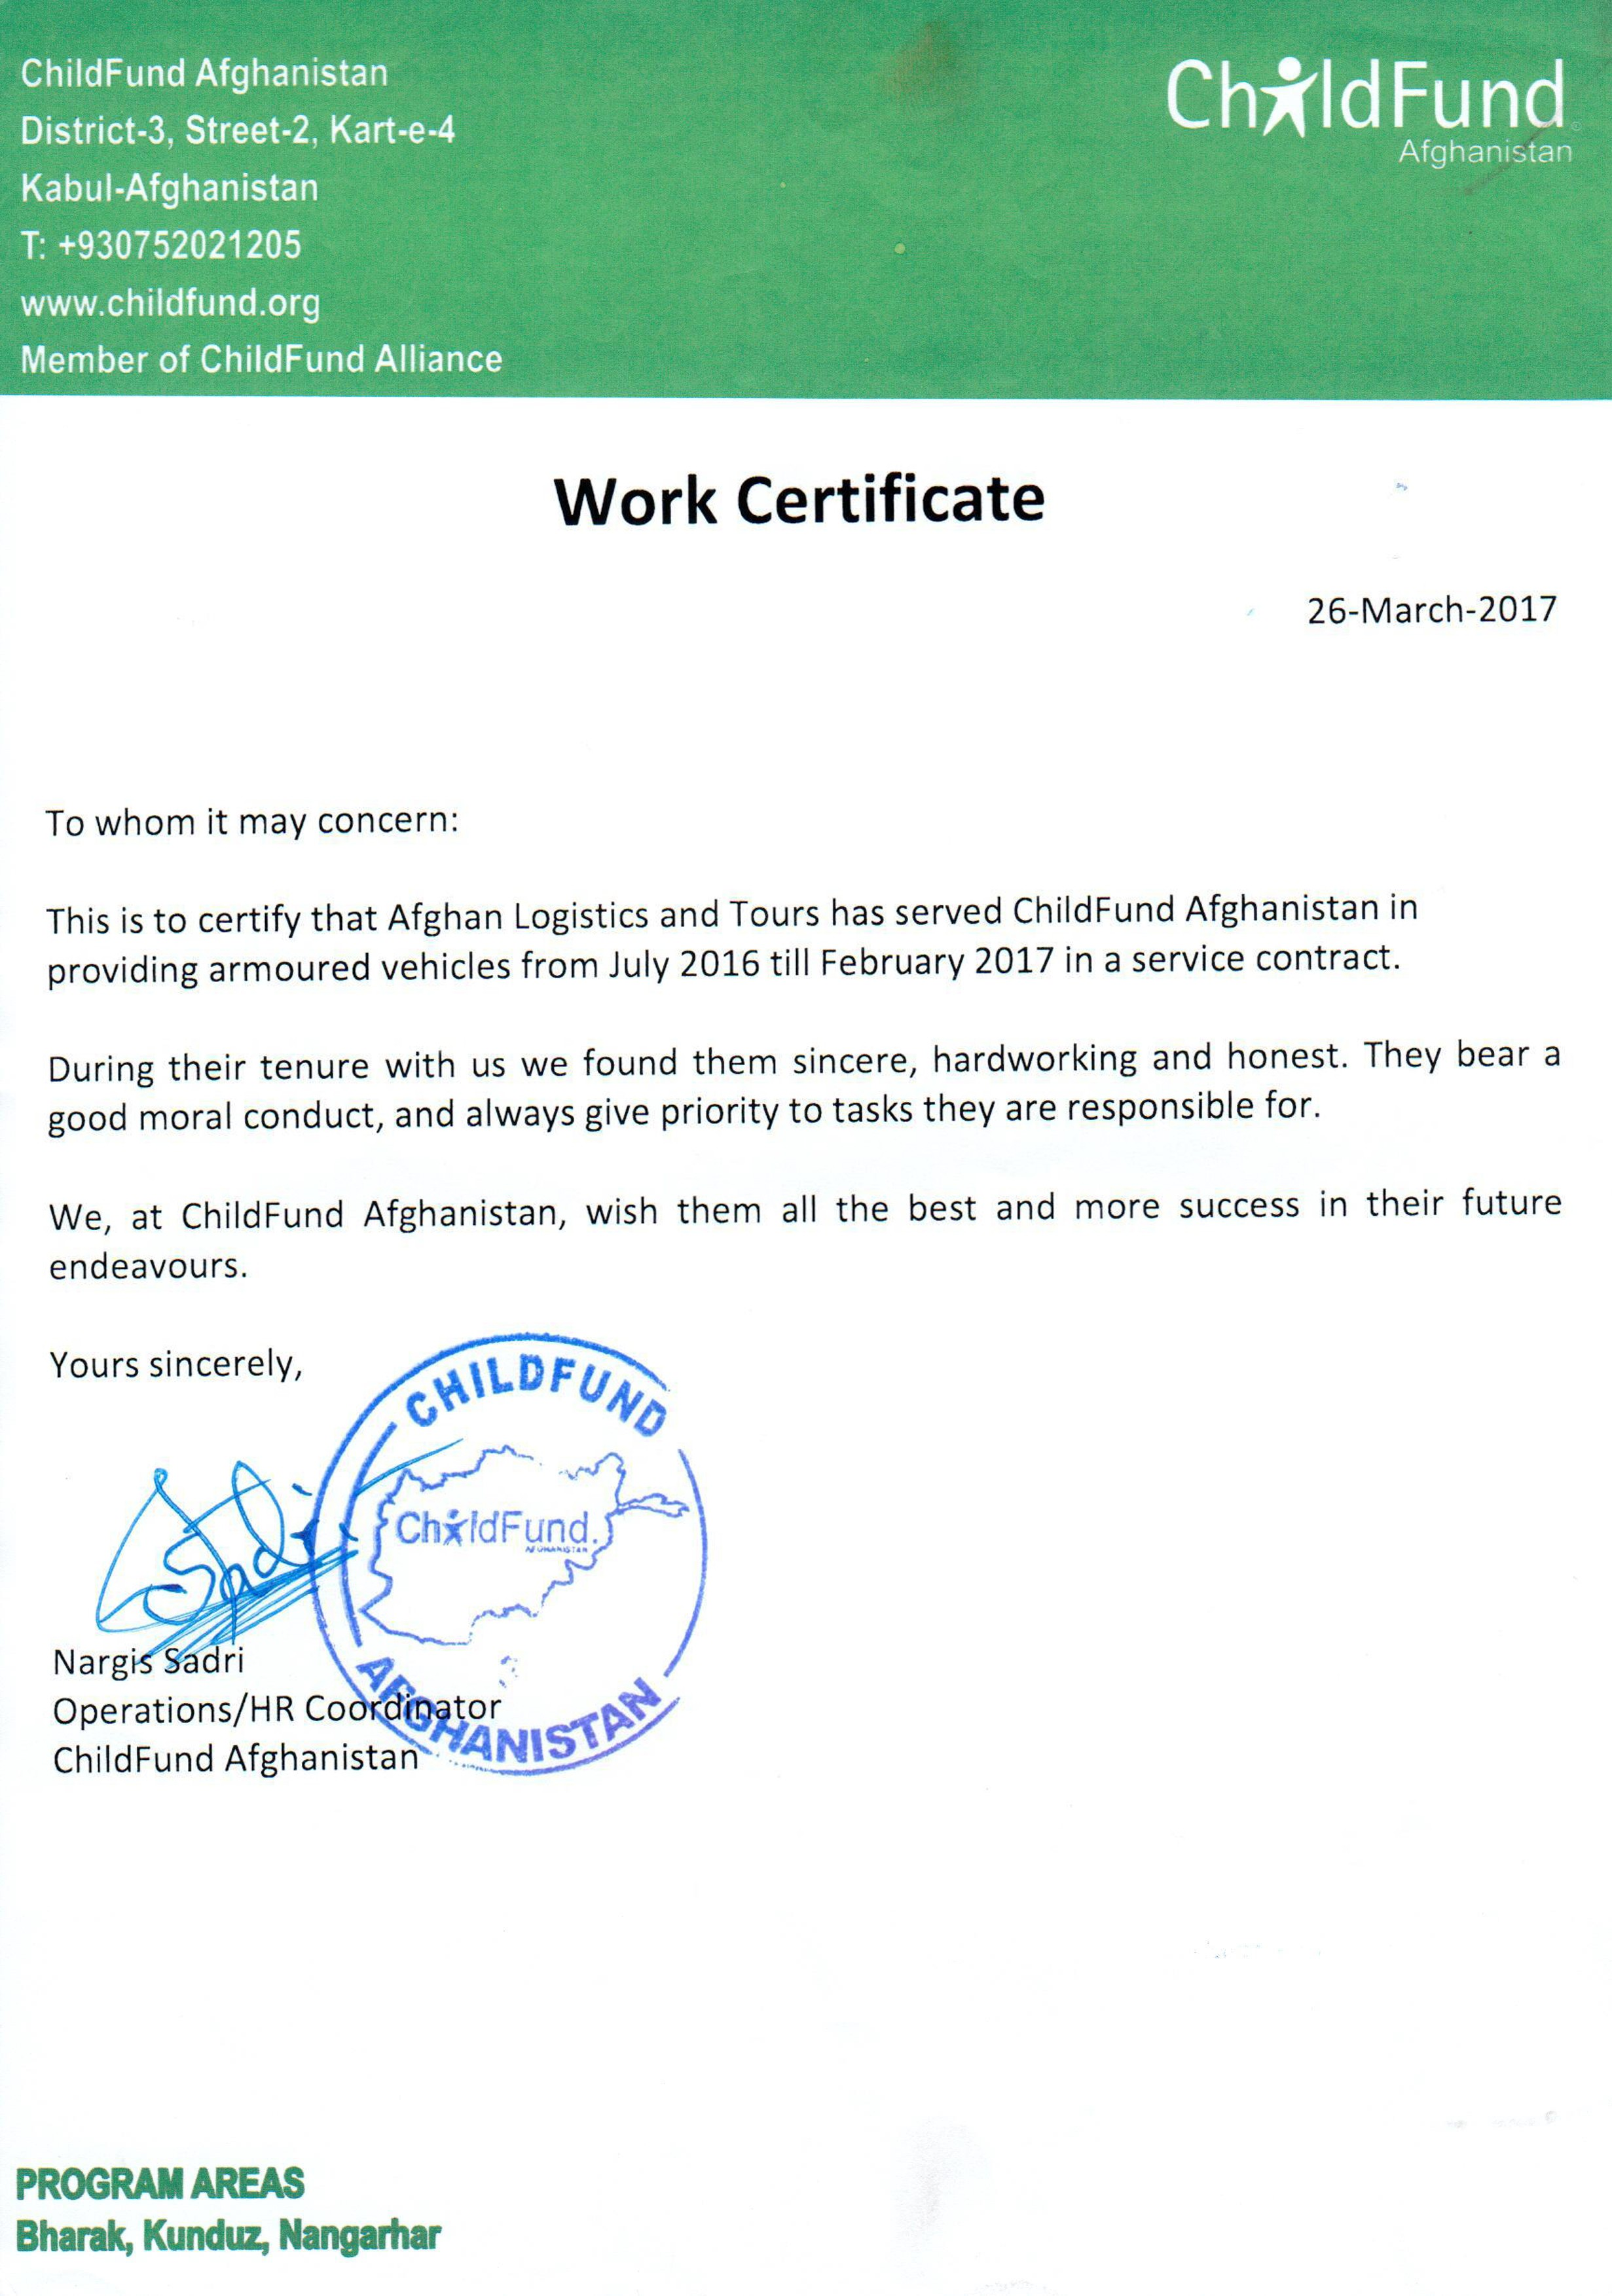 Ngo experience certificate best design sertificate 2018 experience certificate model c45ualwork999 org templates image ngo experience certificate format spiritdancerdesigns Choice Image